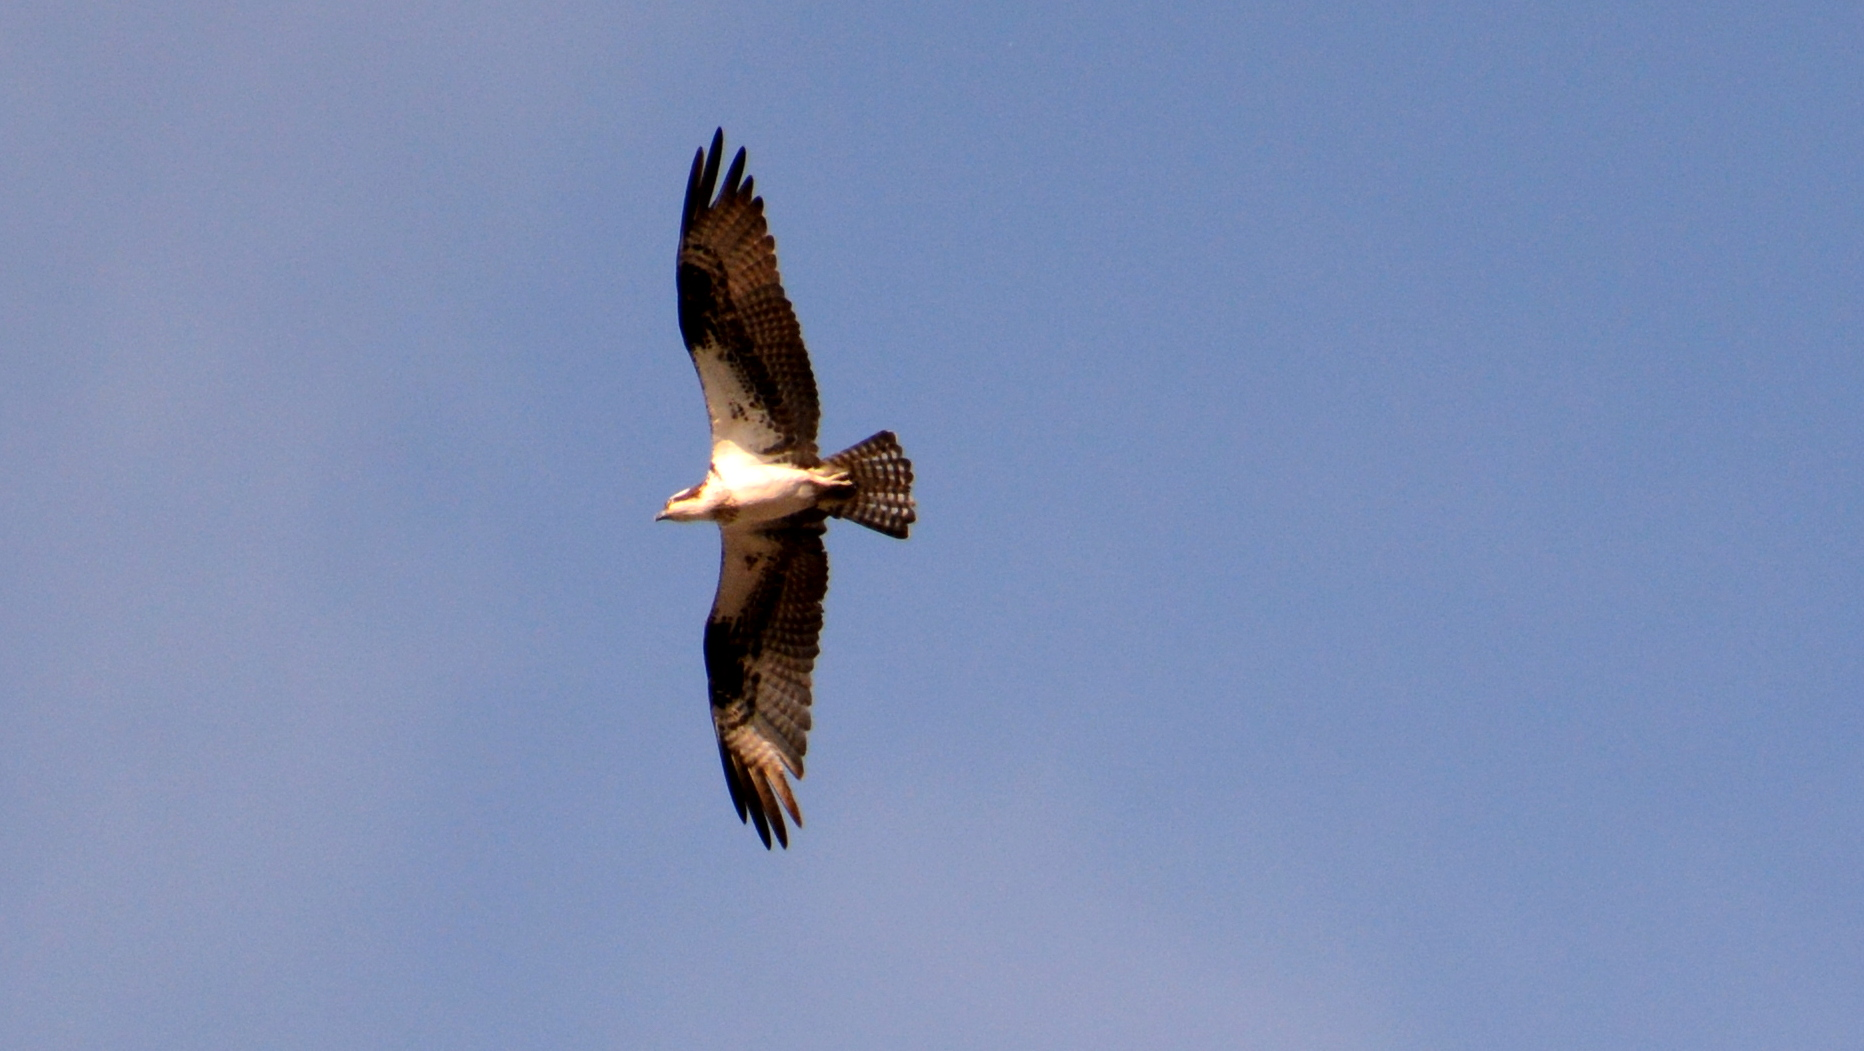 An Osprey flies over, but goes unnoticed by A & A